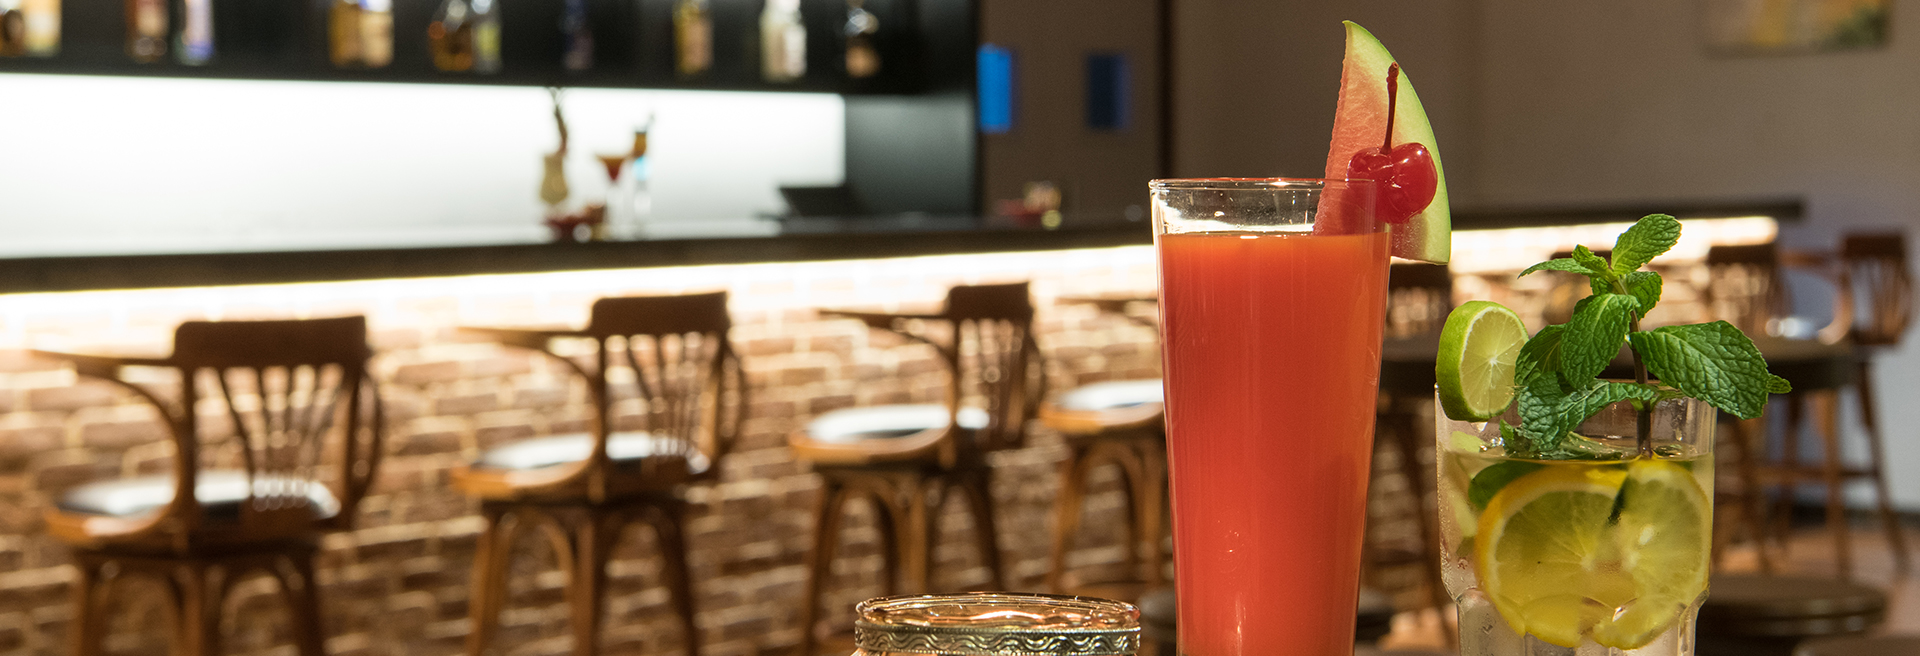 image of Freshly made watermelon juice with a view of the bar